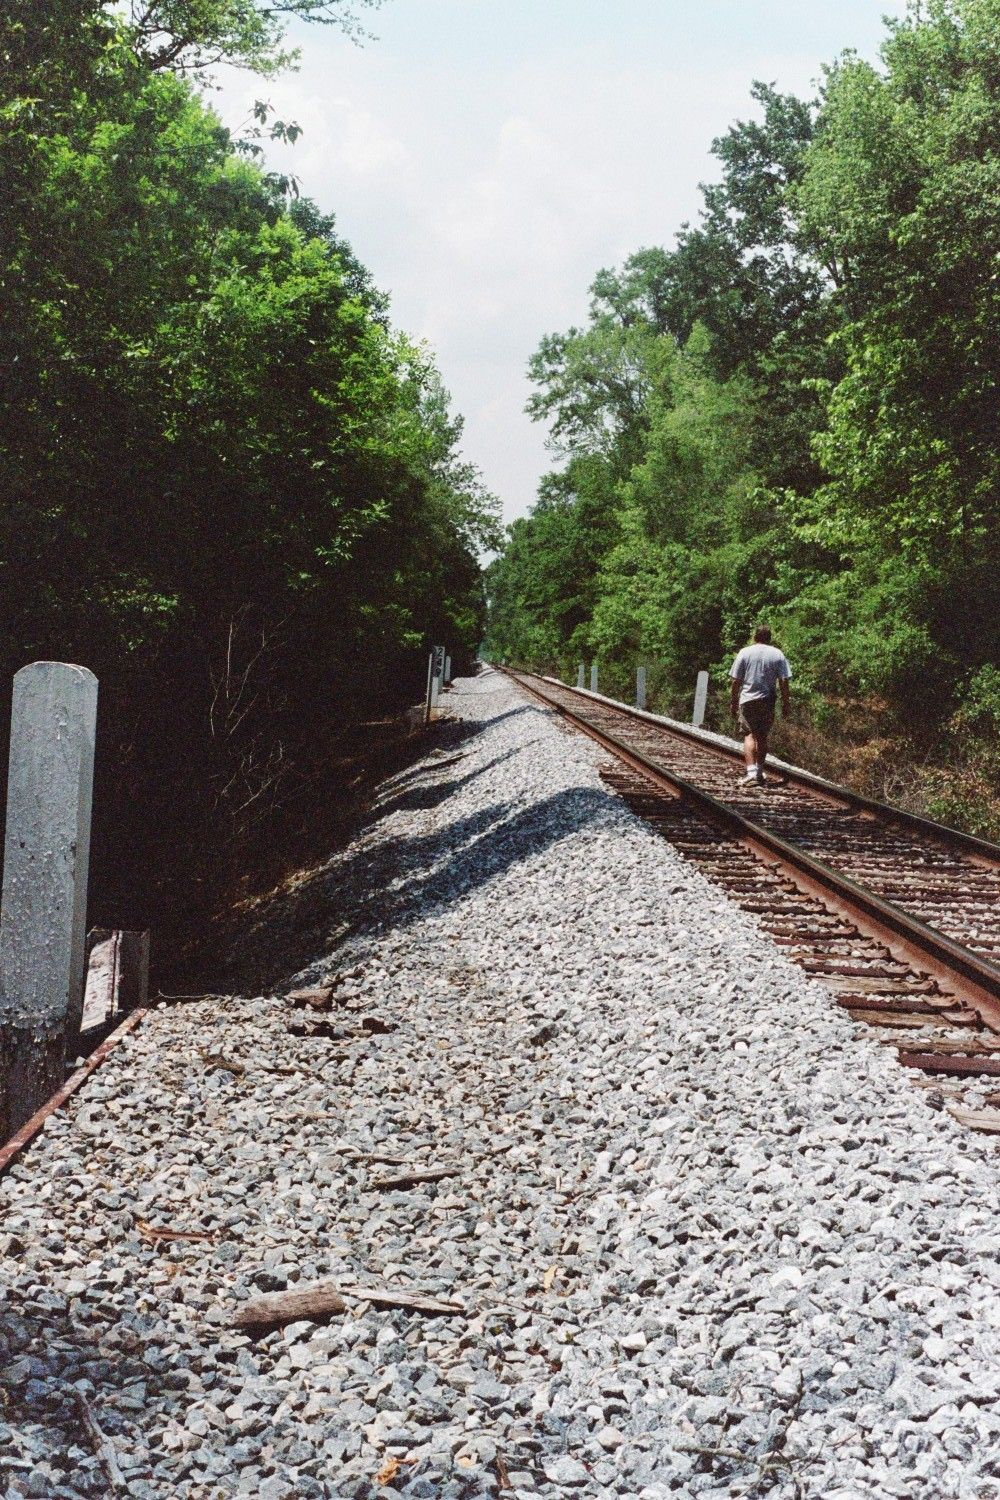 Another shot of the railroad bed in Twiggs County near